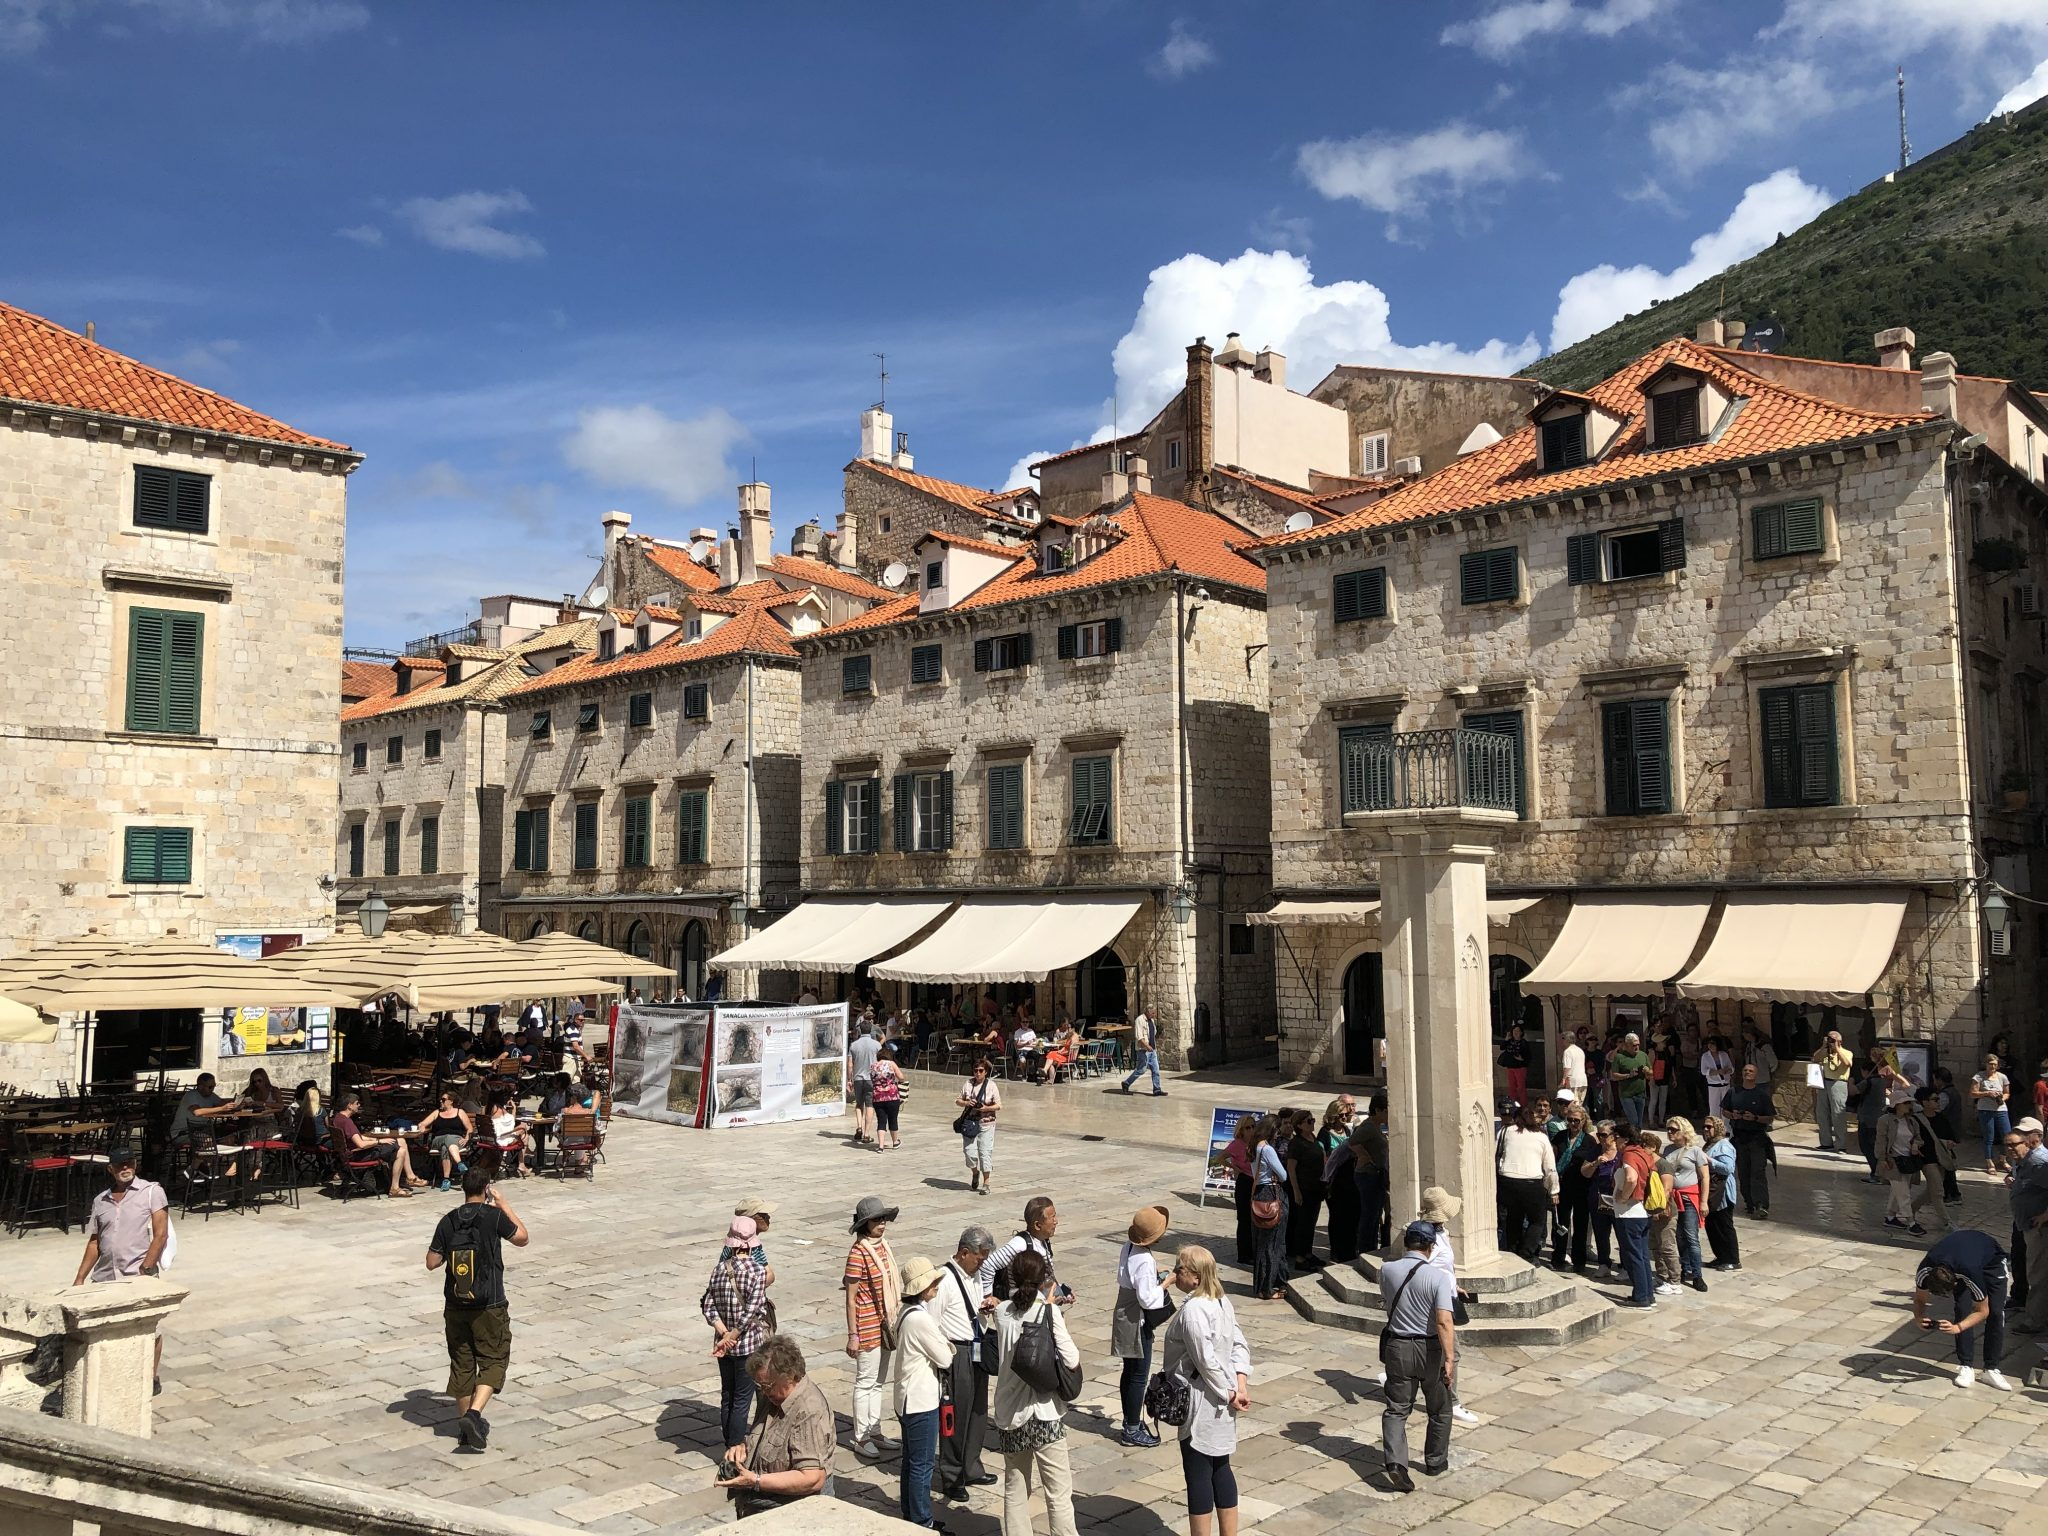 Scenes filmed for Game of Thrones in Dubrovnik includes many on the city's main street